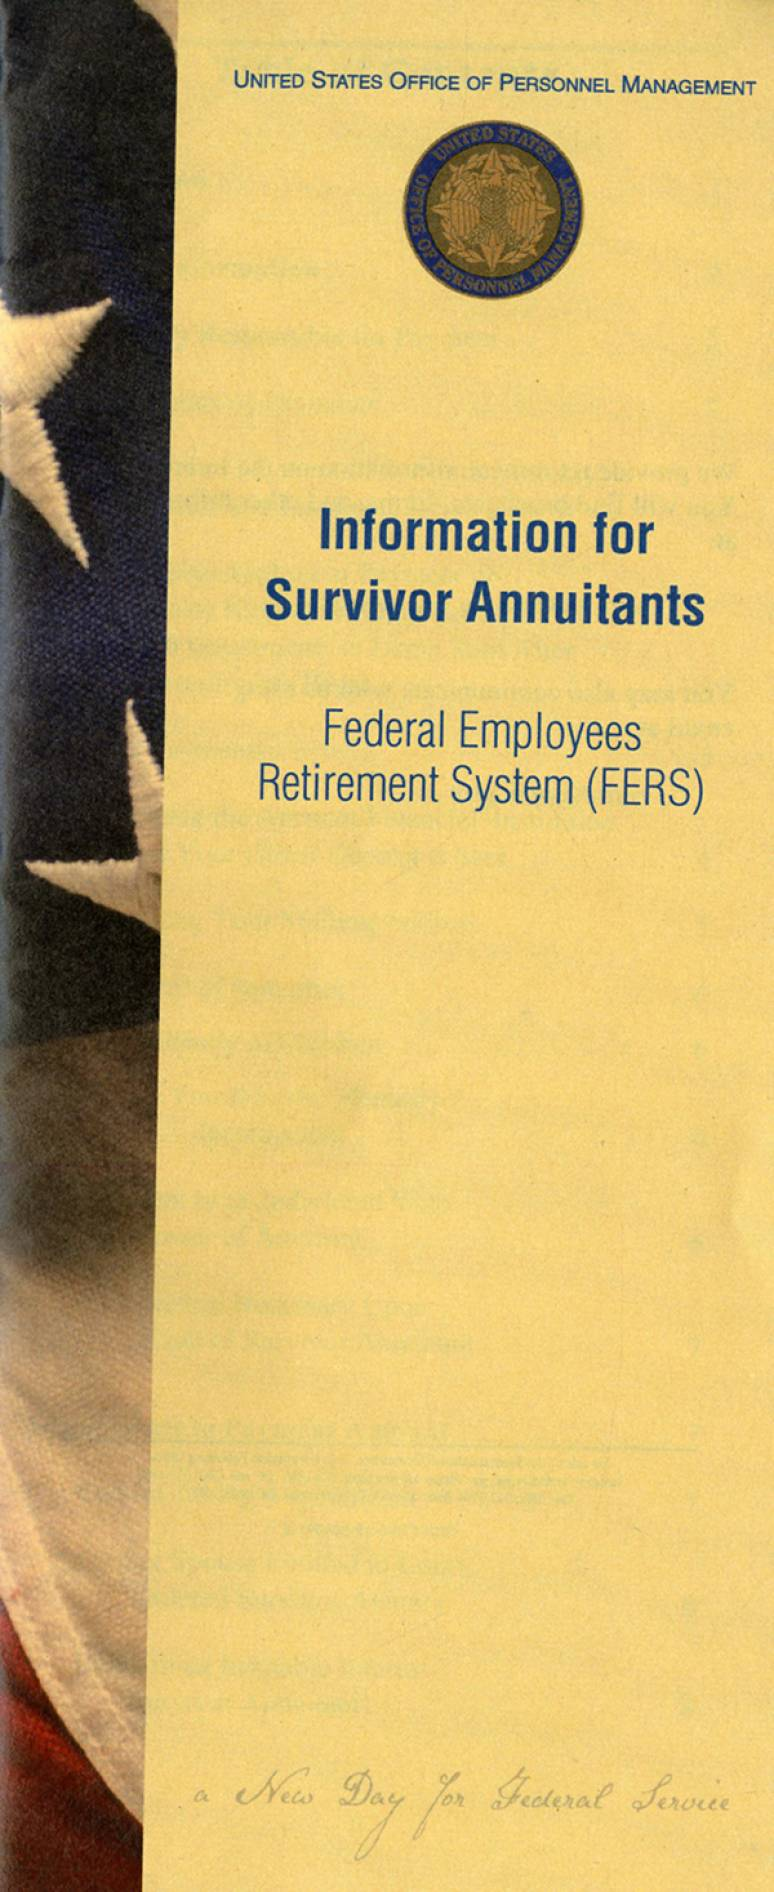 Information for Survivor Annuitants: Federal Employees Retirement System  (FERS)